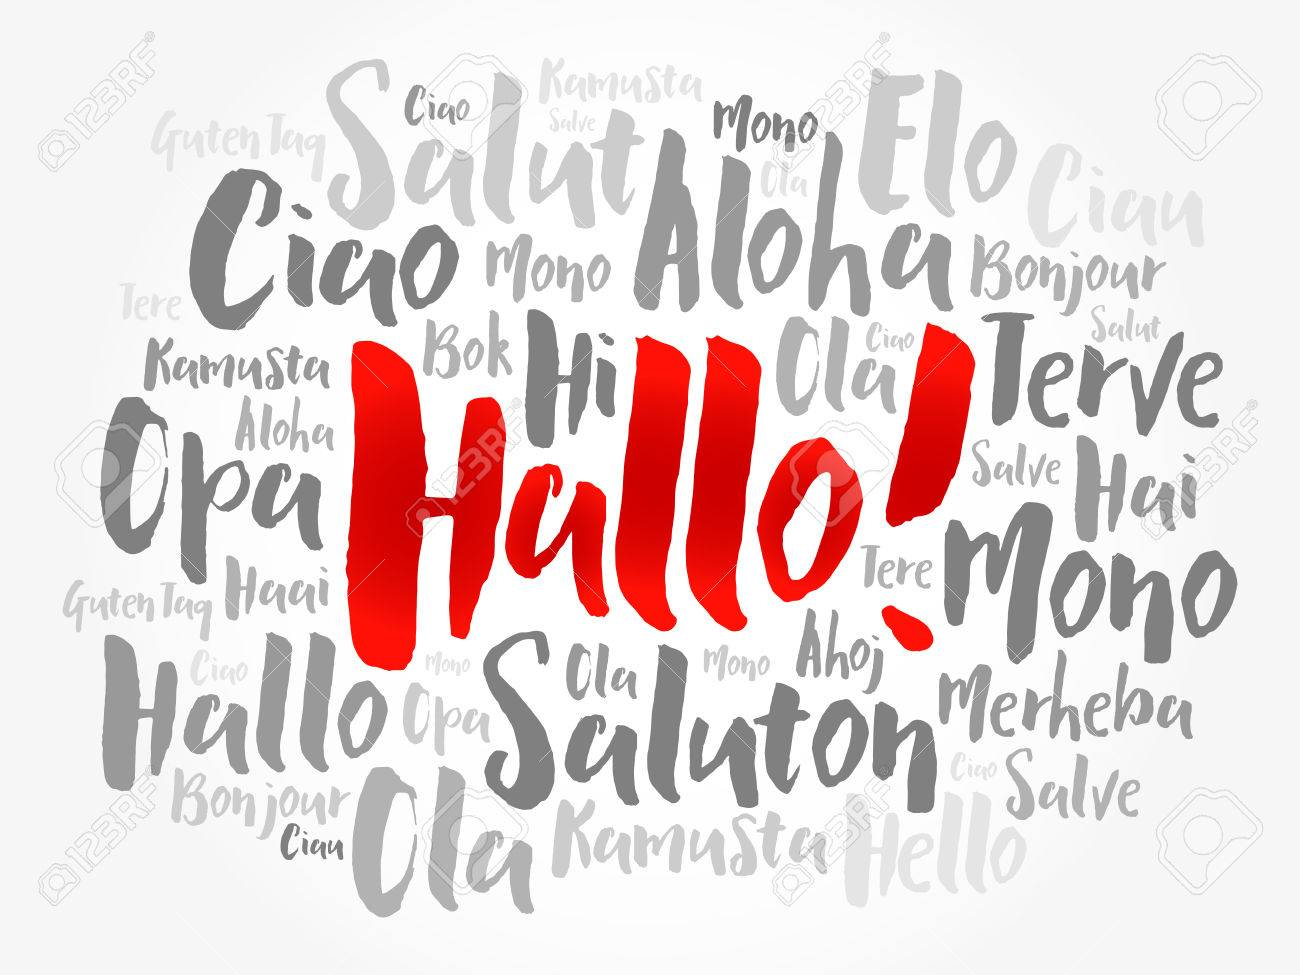 Hallo hello greeting in german word cloud in different languages hallo hello greeting in german word cloud in different languages of the world m4hsunfo